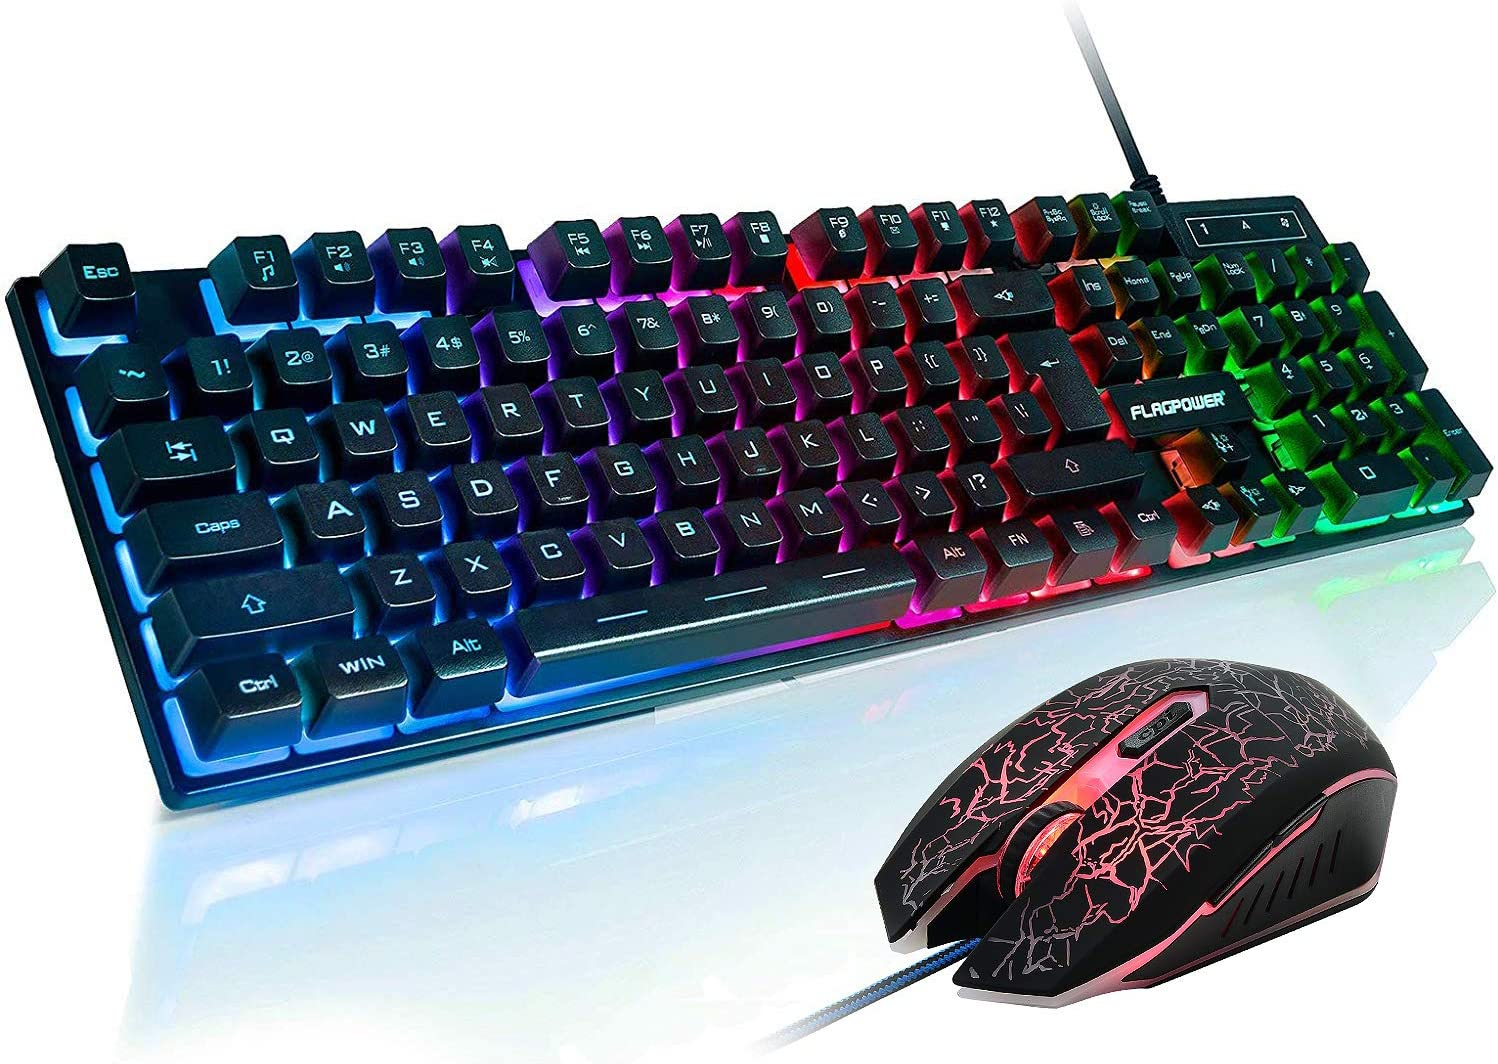 FLAGPOWER RGB Gaming Keyboard and Breathing Mouse Combo, Adjustbale Breathing Backlit Mechanical Feeling Keyboard with 4 Colors 4800DPI Backlight Mouse for PC Laptop Computer Game and Work